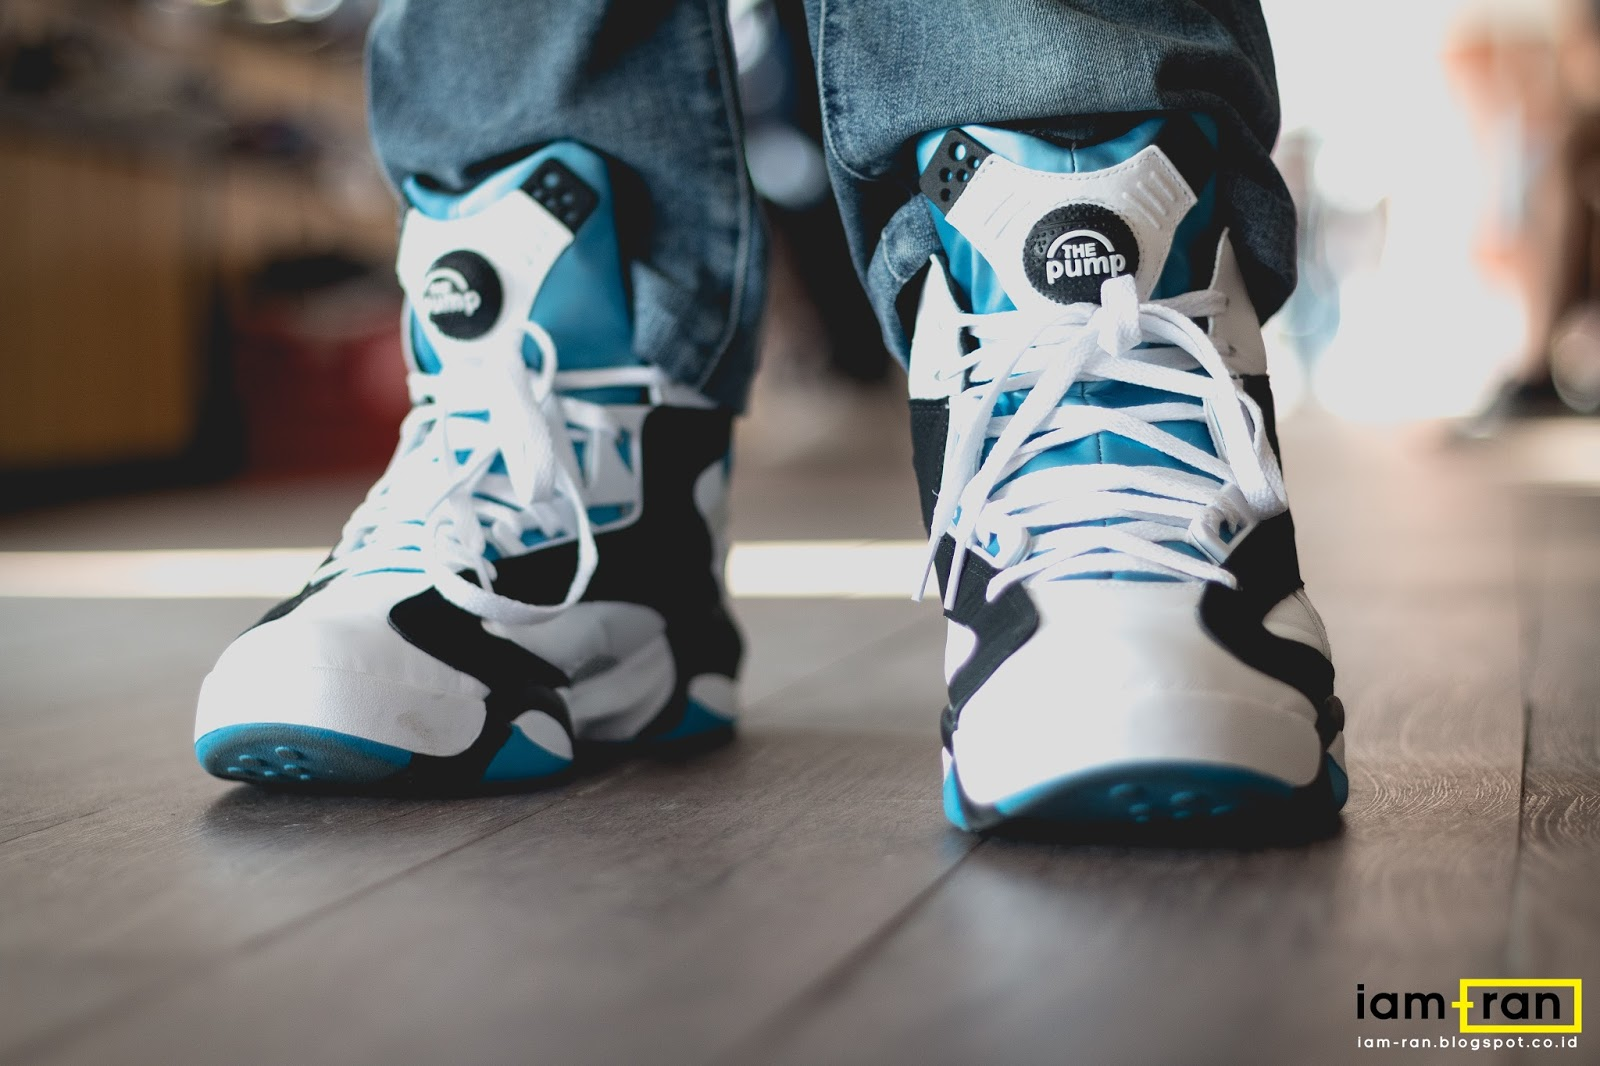 IAM RAN: ON FEET : Said Reebok Shaq Attaq